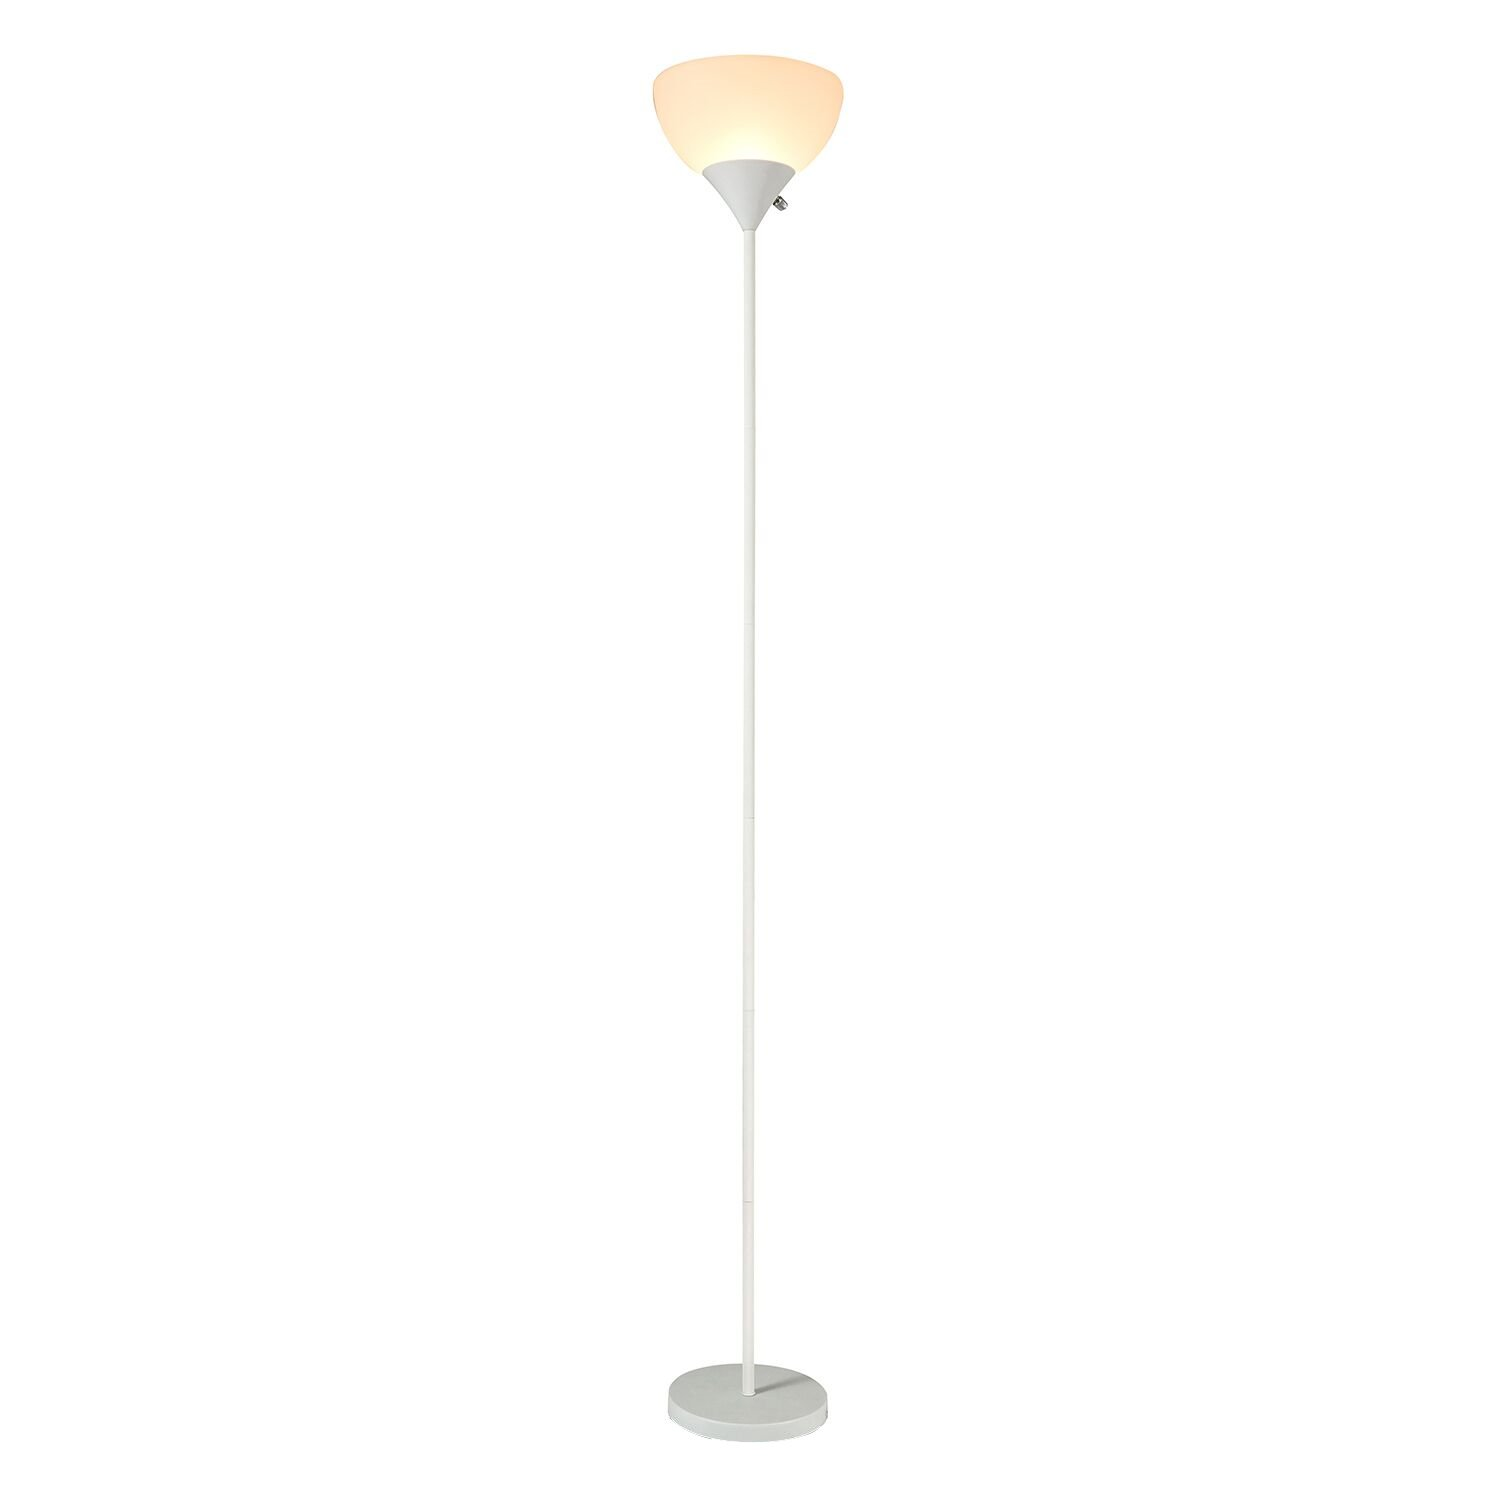 SUNLLIPE LED Torchiere Floor Lamp - 70 inches Sturdy Standing 9W Integrated LED Energy Saving Uplight for Living Room, Dorm, Bedroom, and Office - White